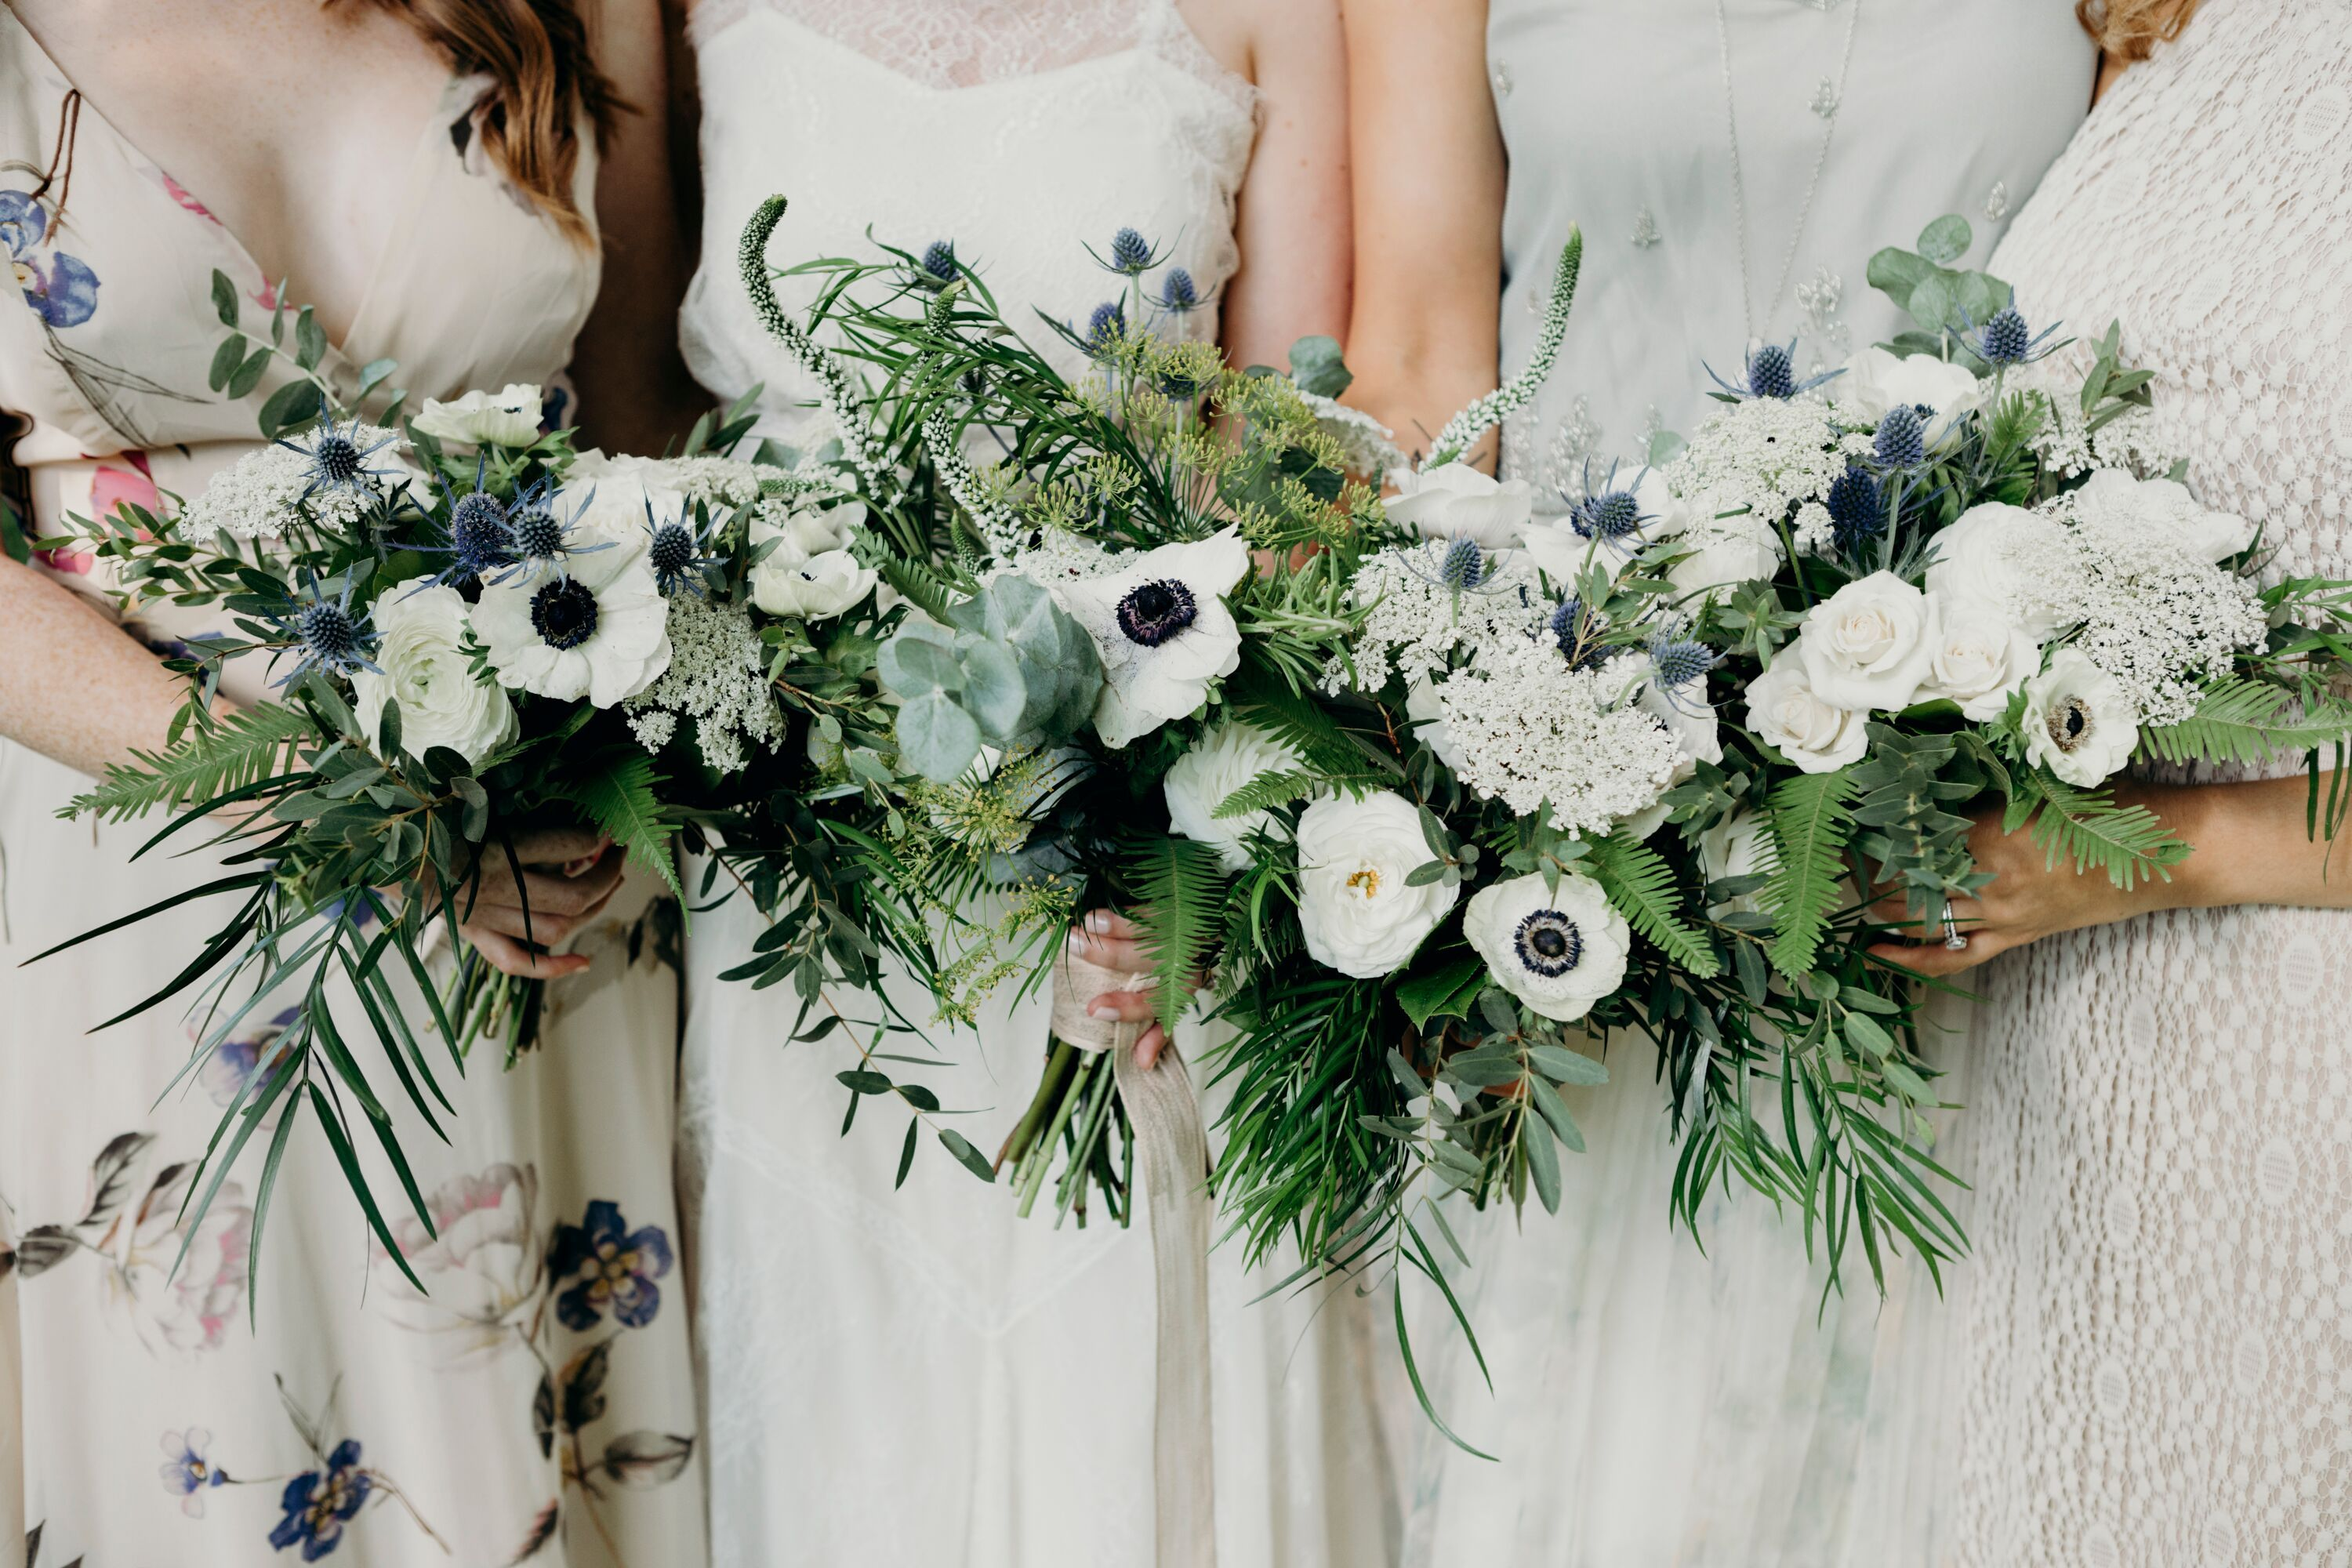 Whimsical Bouquets Of Anemones Roses Herbs And Greenery Wedding Bridal Bouquets White Bridal Bouquet Bridesmaid Bouquet White